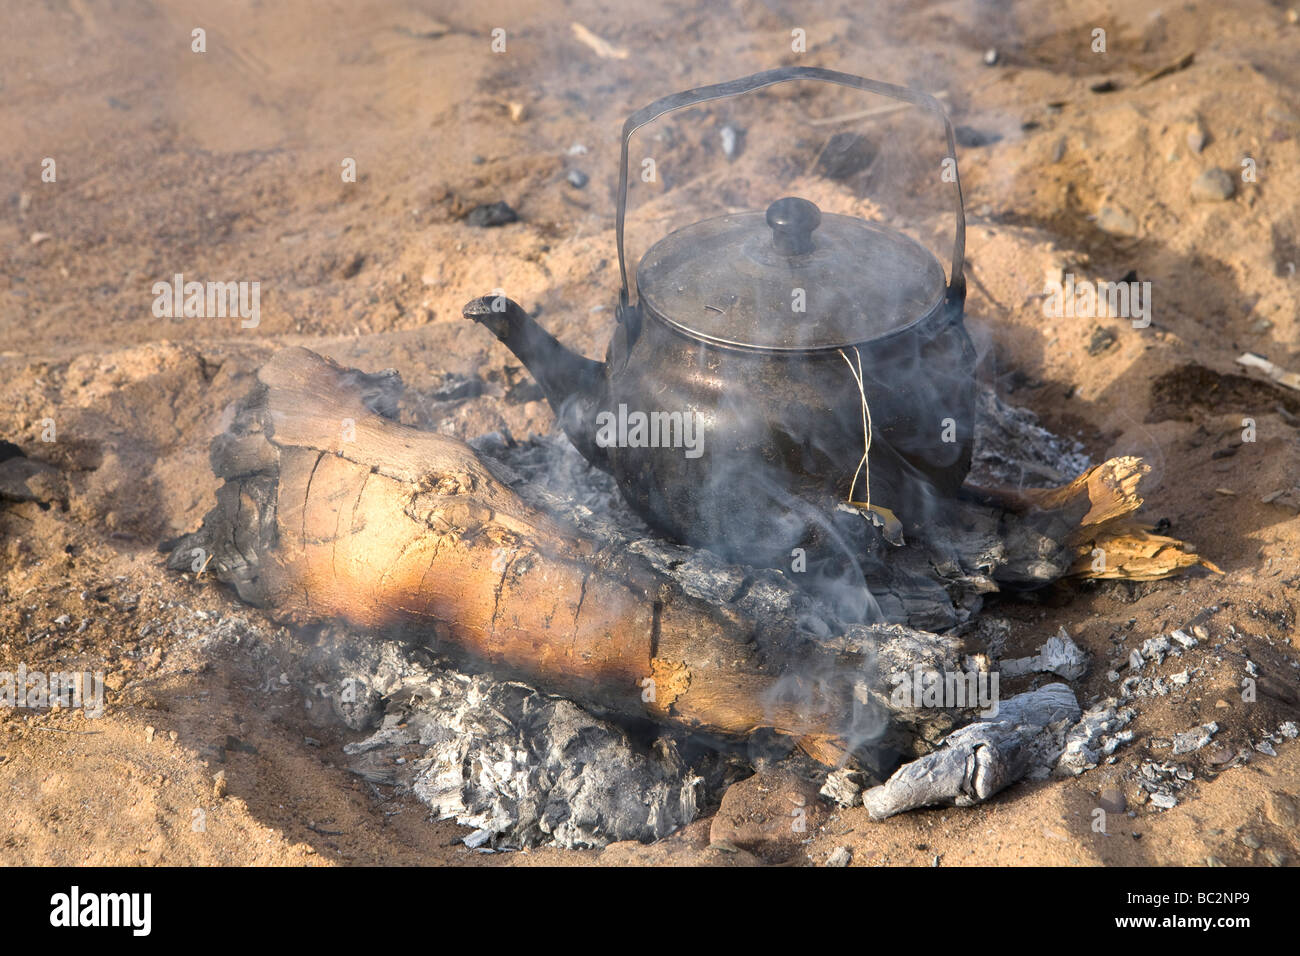 Kettle coming to boil on open fire  while camping in the Eastern Desert of Egypt, North Africa - Stock Image